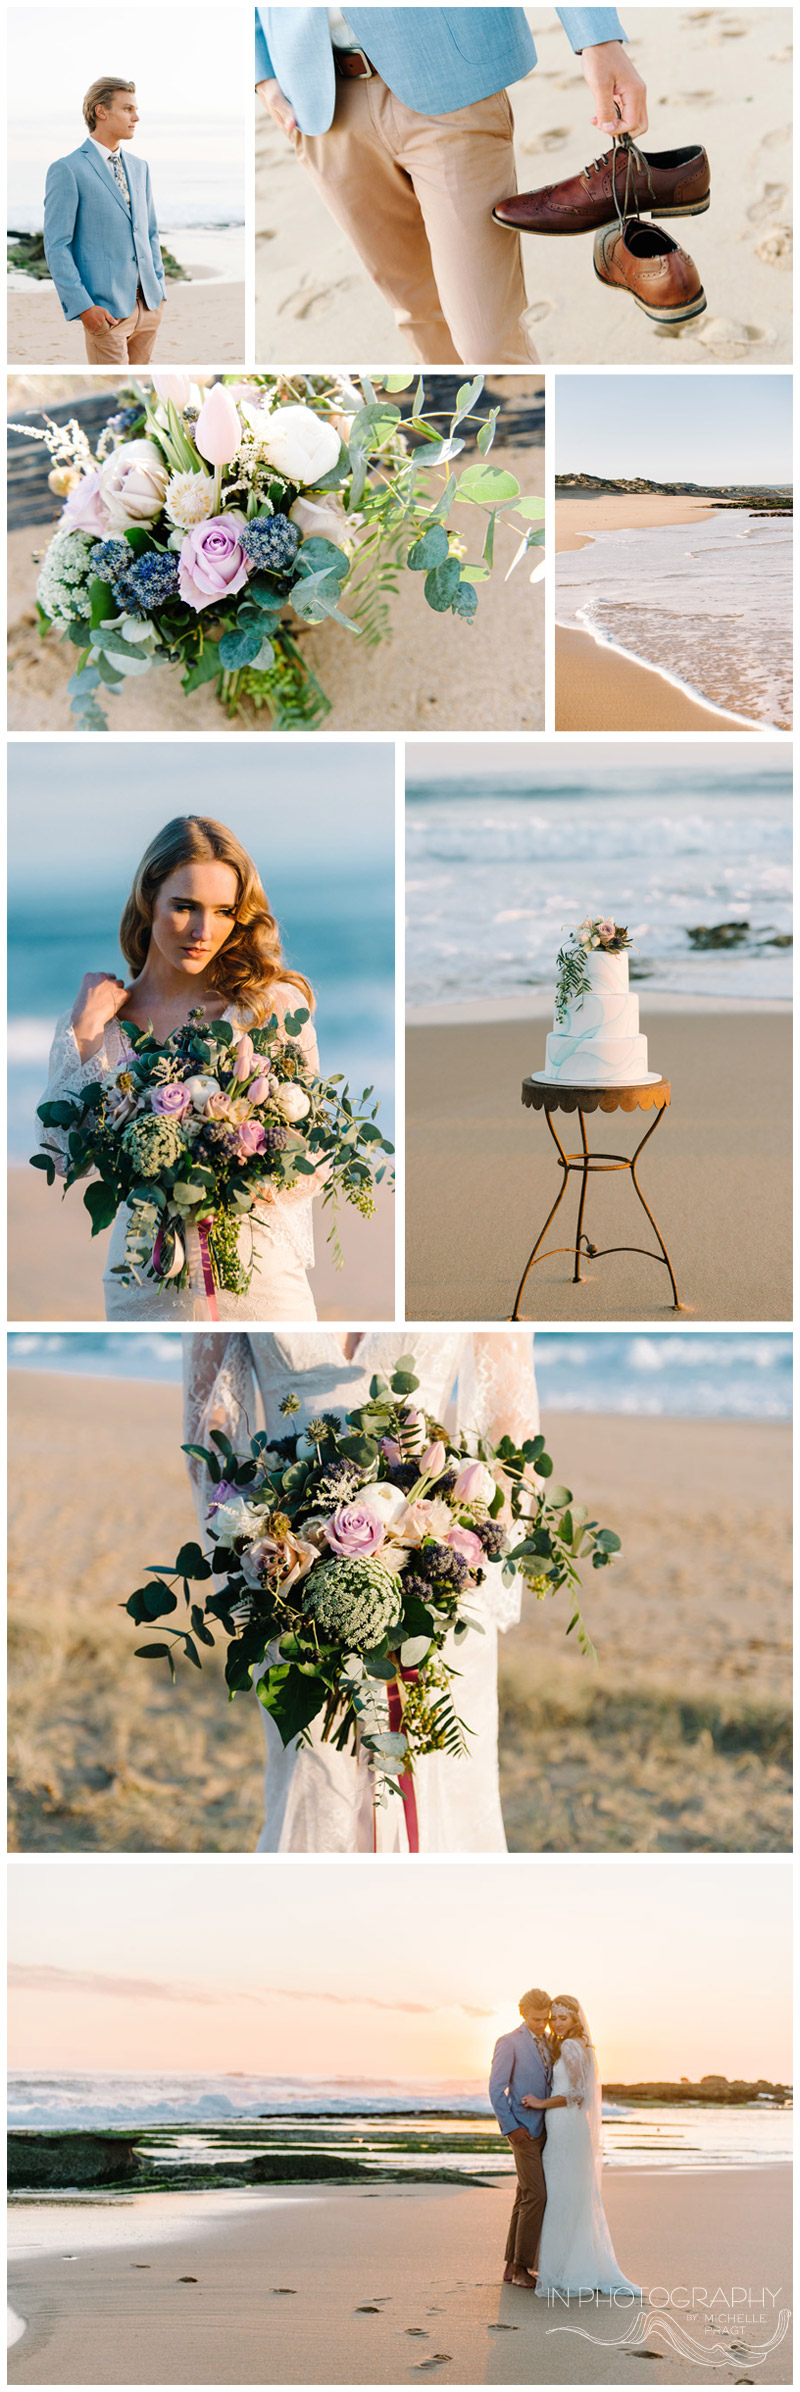 boho beach wedding at sunset